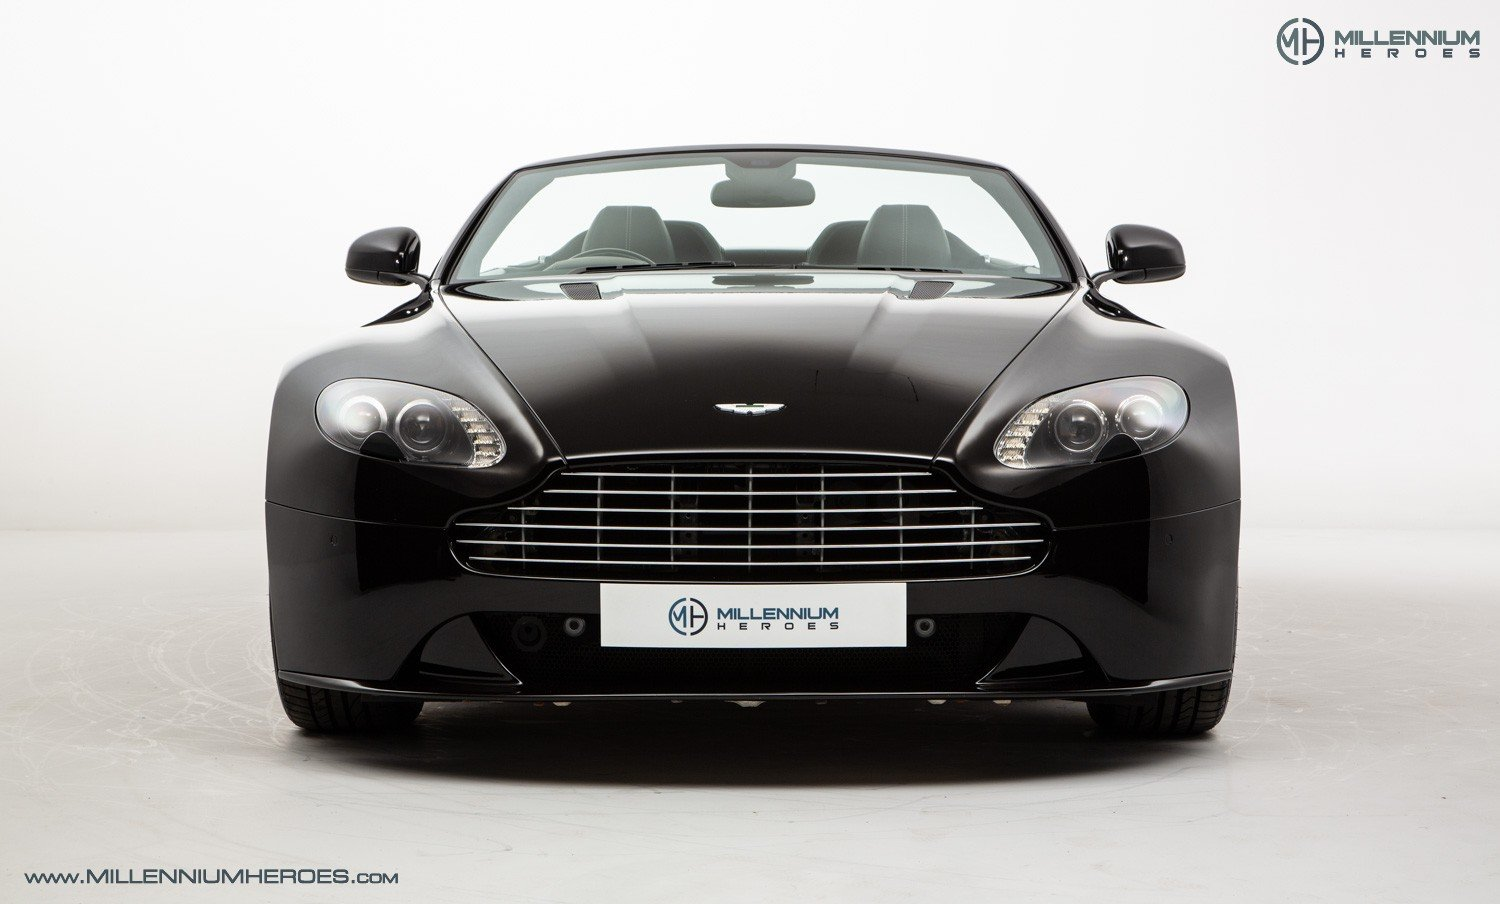 2013 ASTON MARTIN V8 VANTAGE S // AM WARRANTY // FULL AM HISTORY  For Sale (picture 4 of 23)